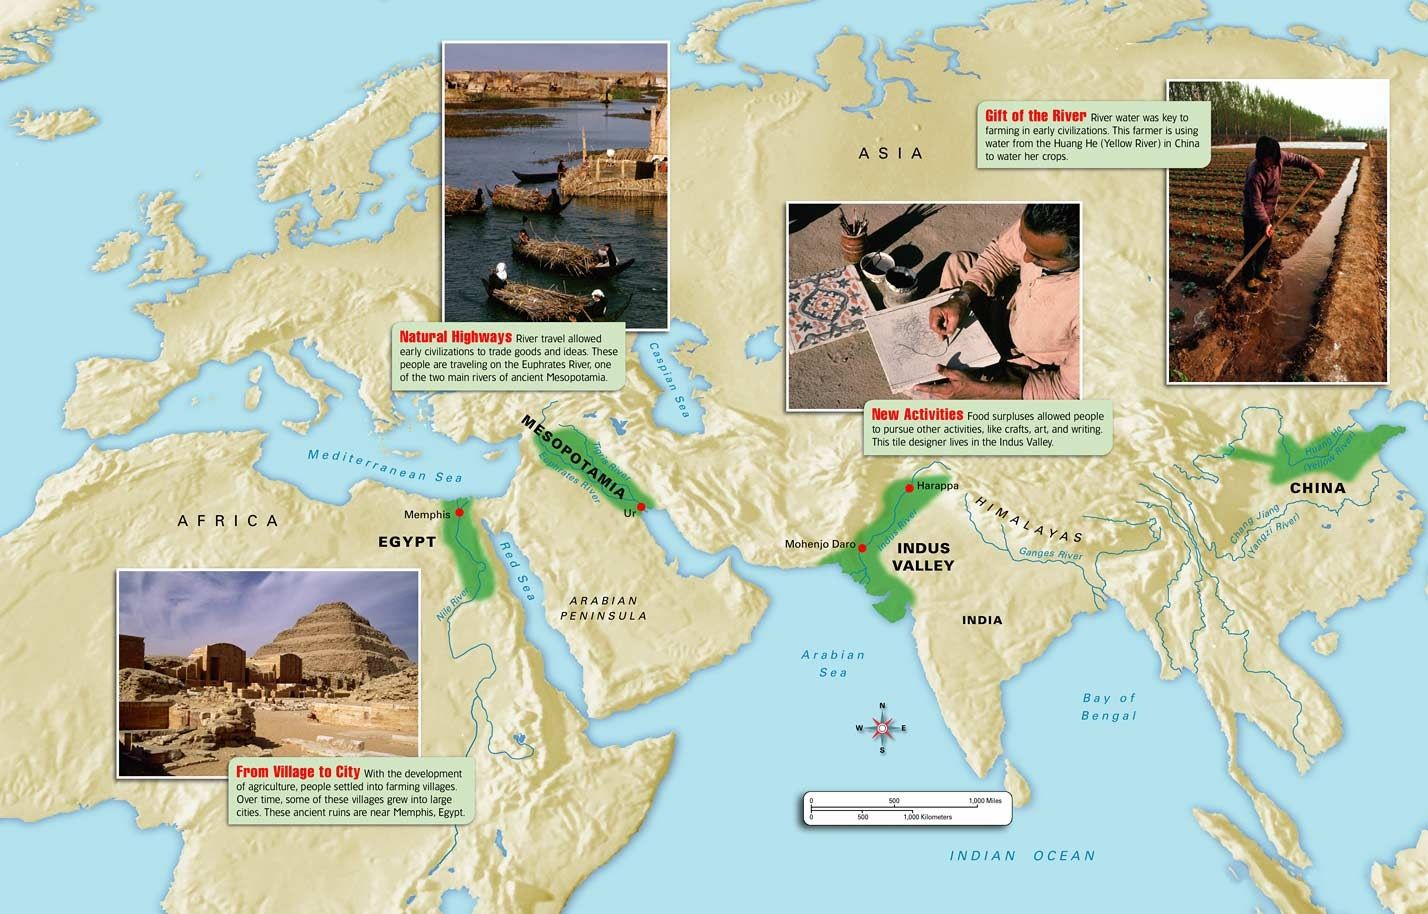 The Earliest Civilizations Emerged In A Egypt Along The Nile River Valley At About 3 000 Bce B